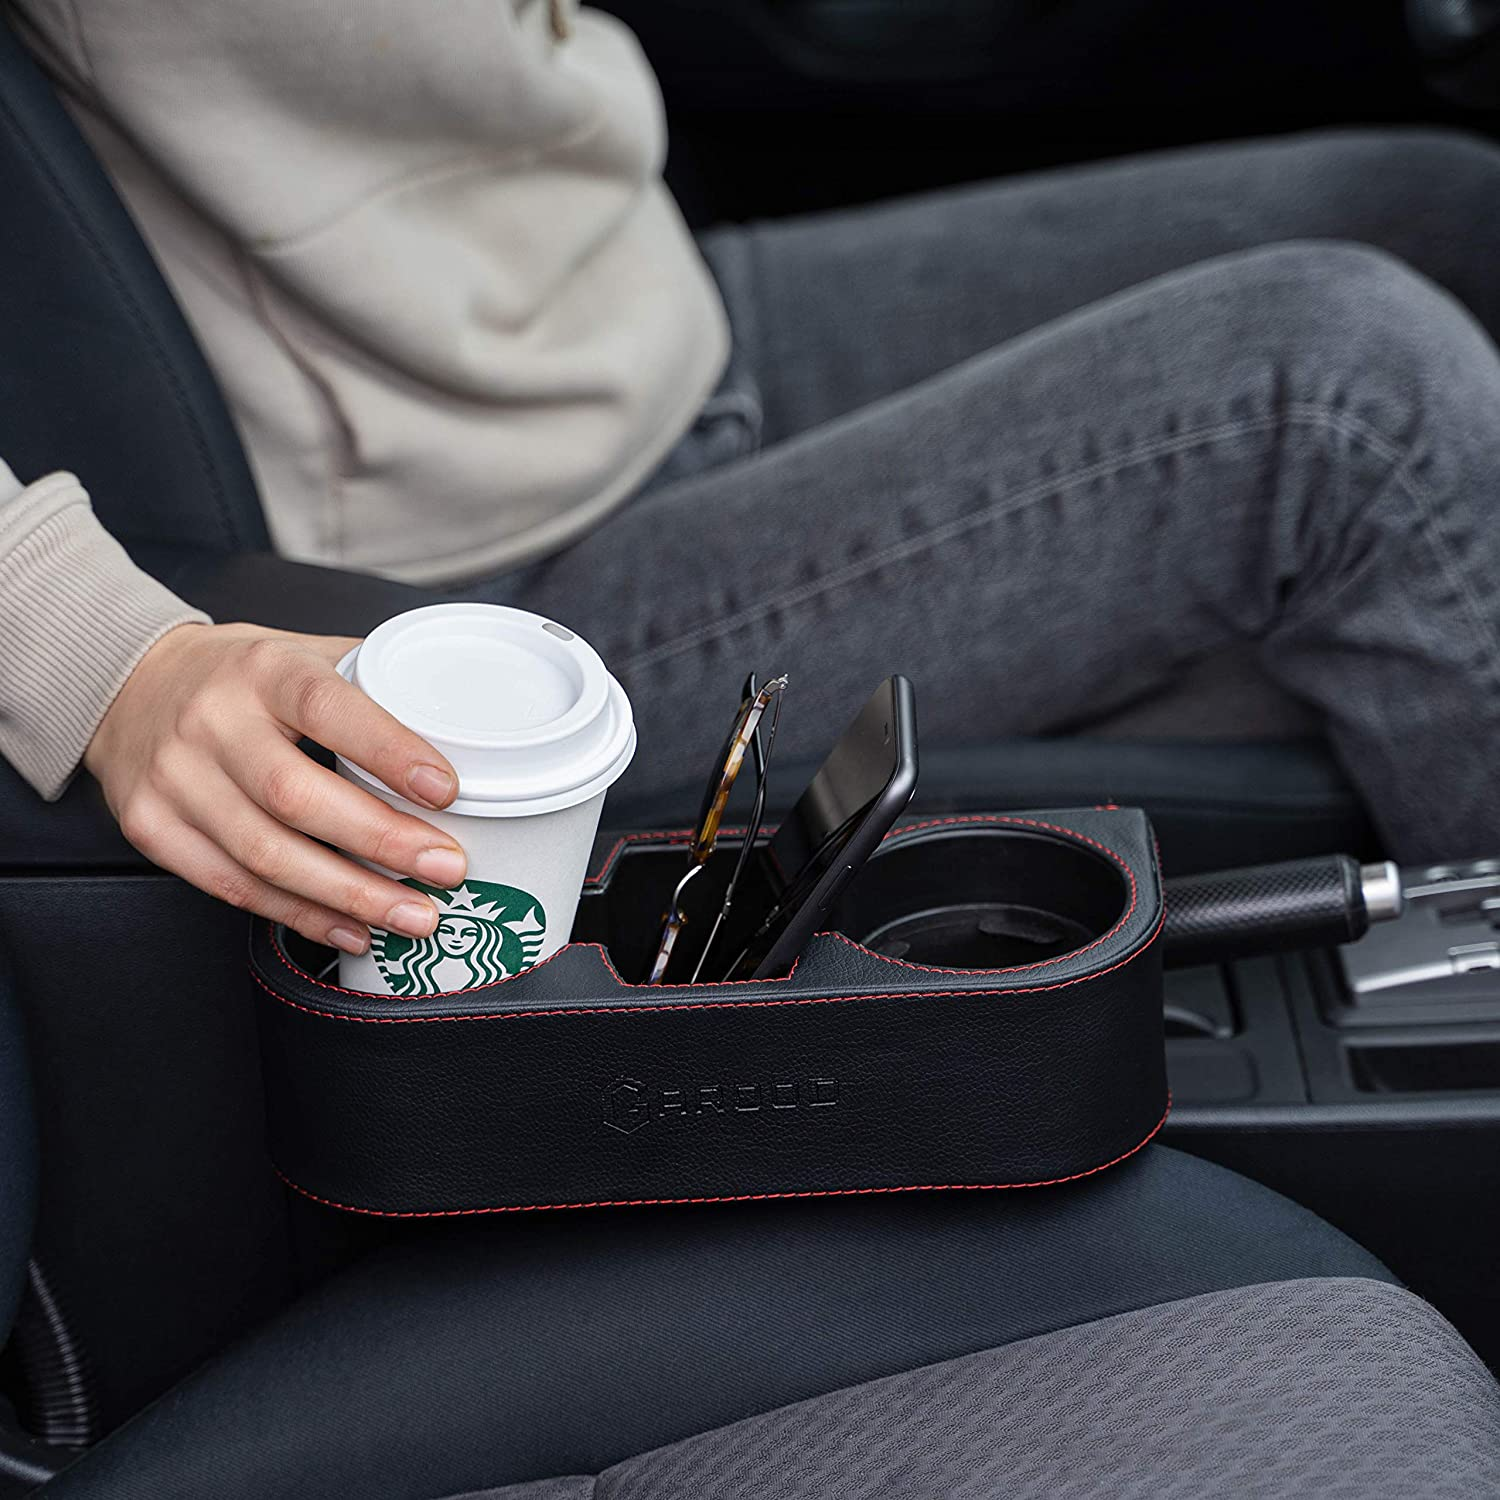 1 Cup stabilizer Back Seat and Couch Cupholder StorageBox Free Cup STABILIZER Multifunctional Leather Expander for Drink Phone Mount Coasters Garood Car Cup Holder Front Seat Gap Filler Organizer